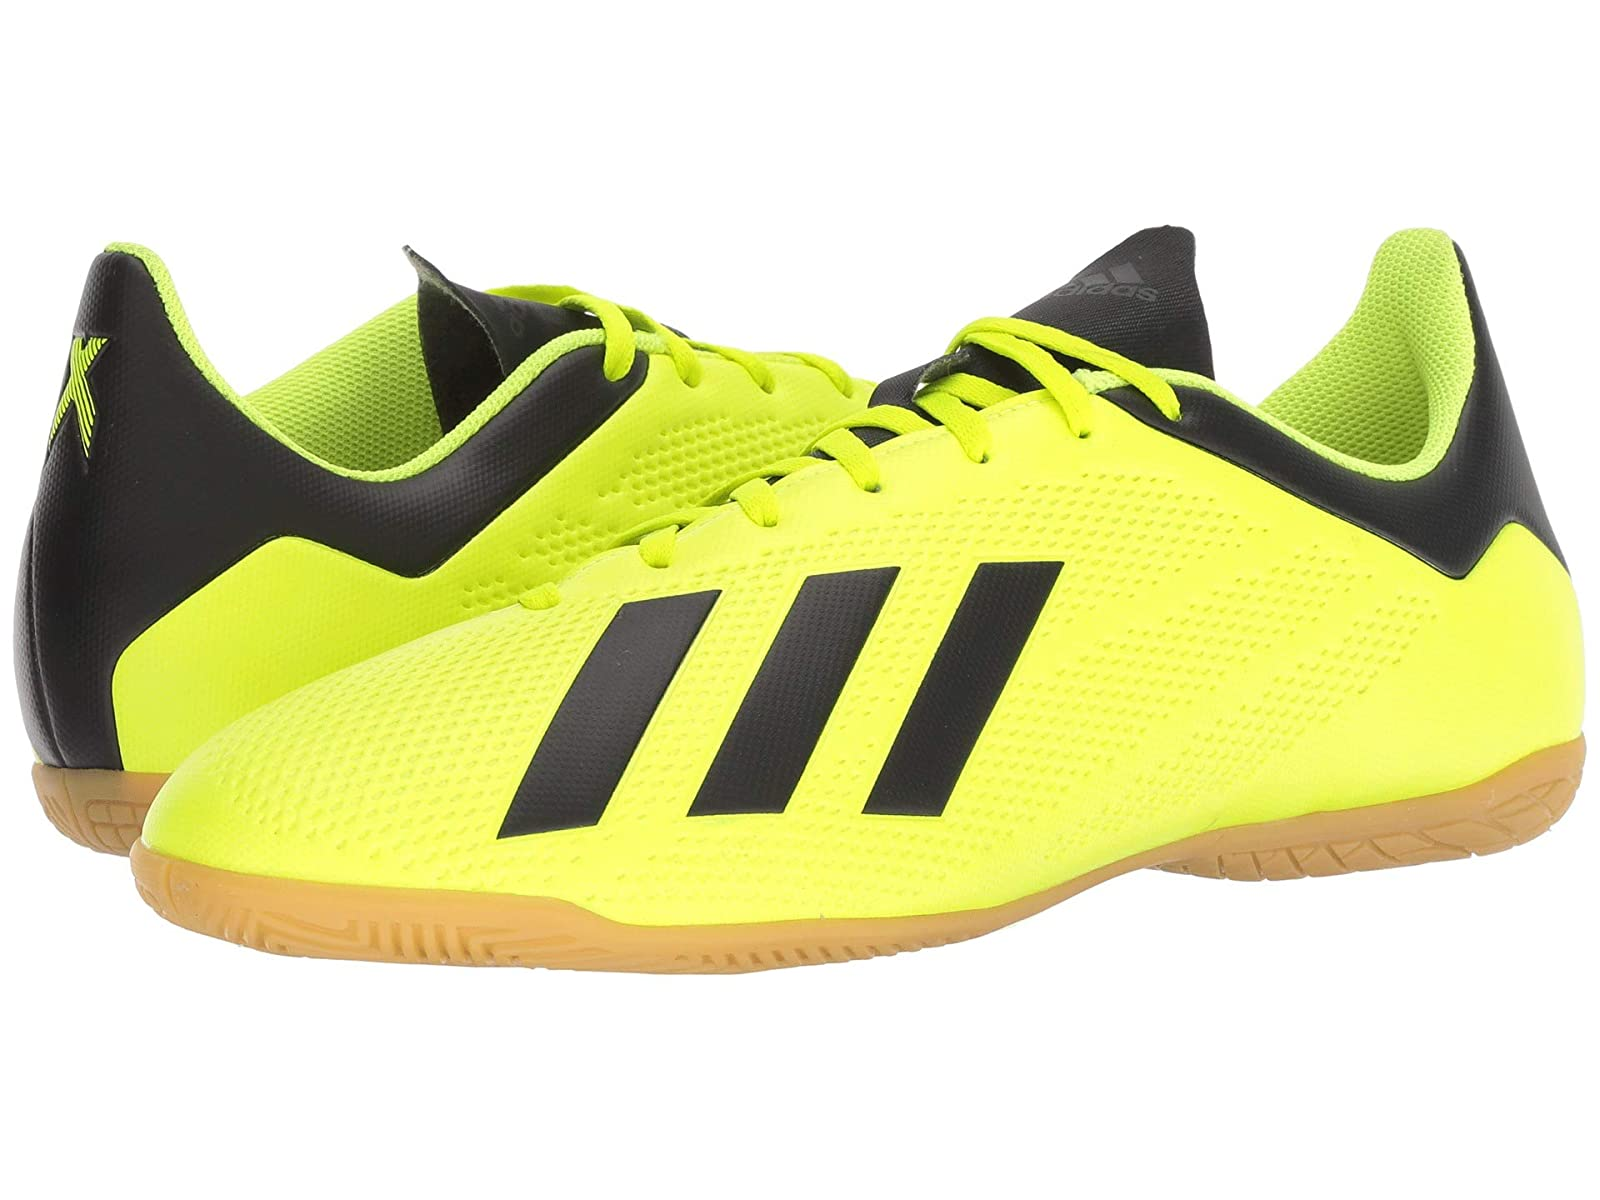 adidas X Tango 18.4 IN World Cup PackAtmospheric grades have affordable shoes